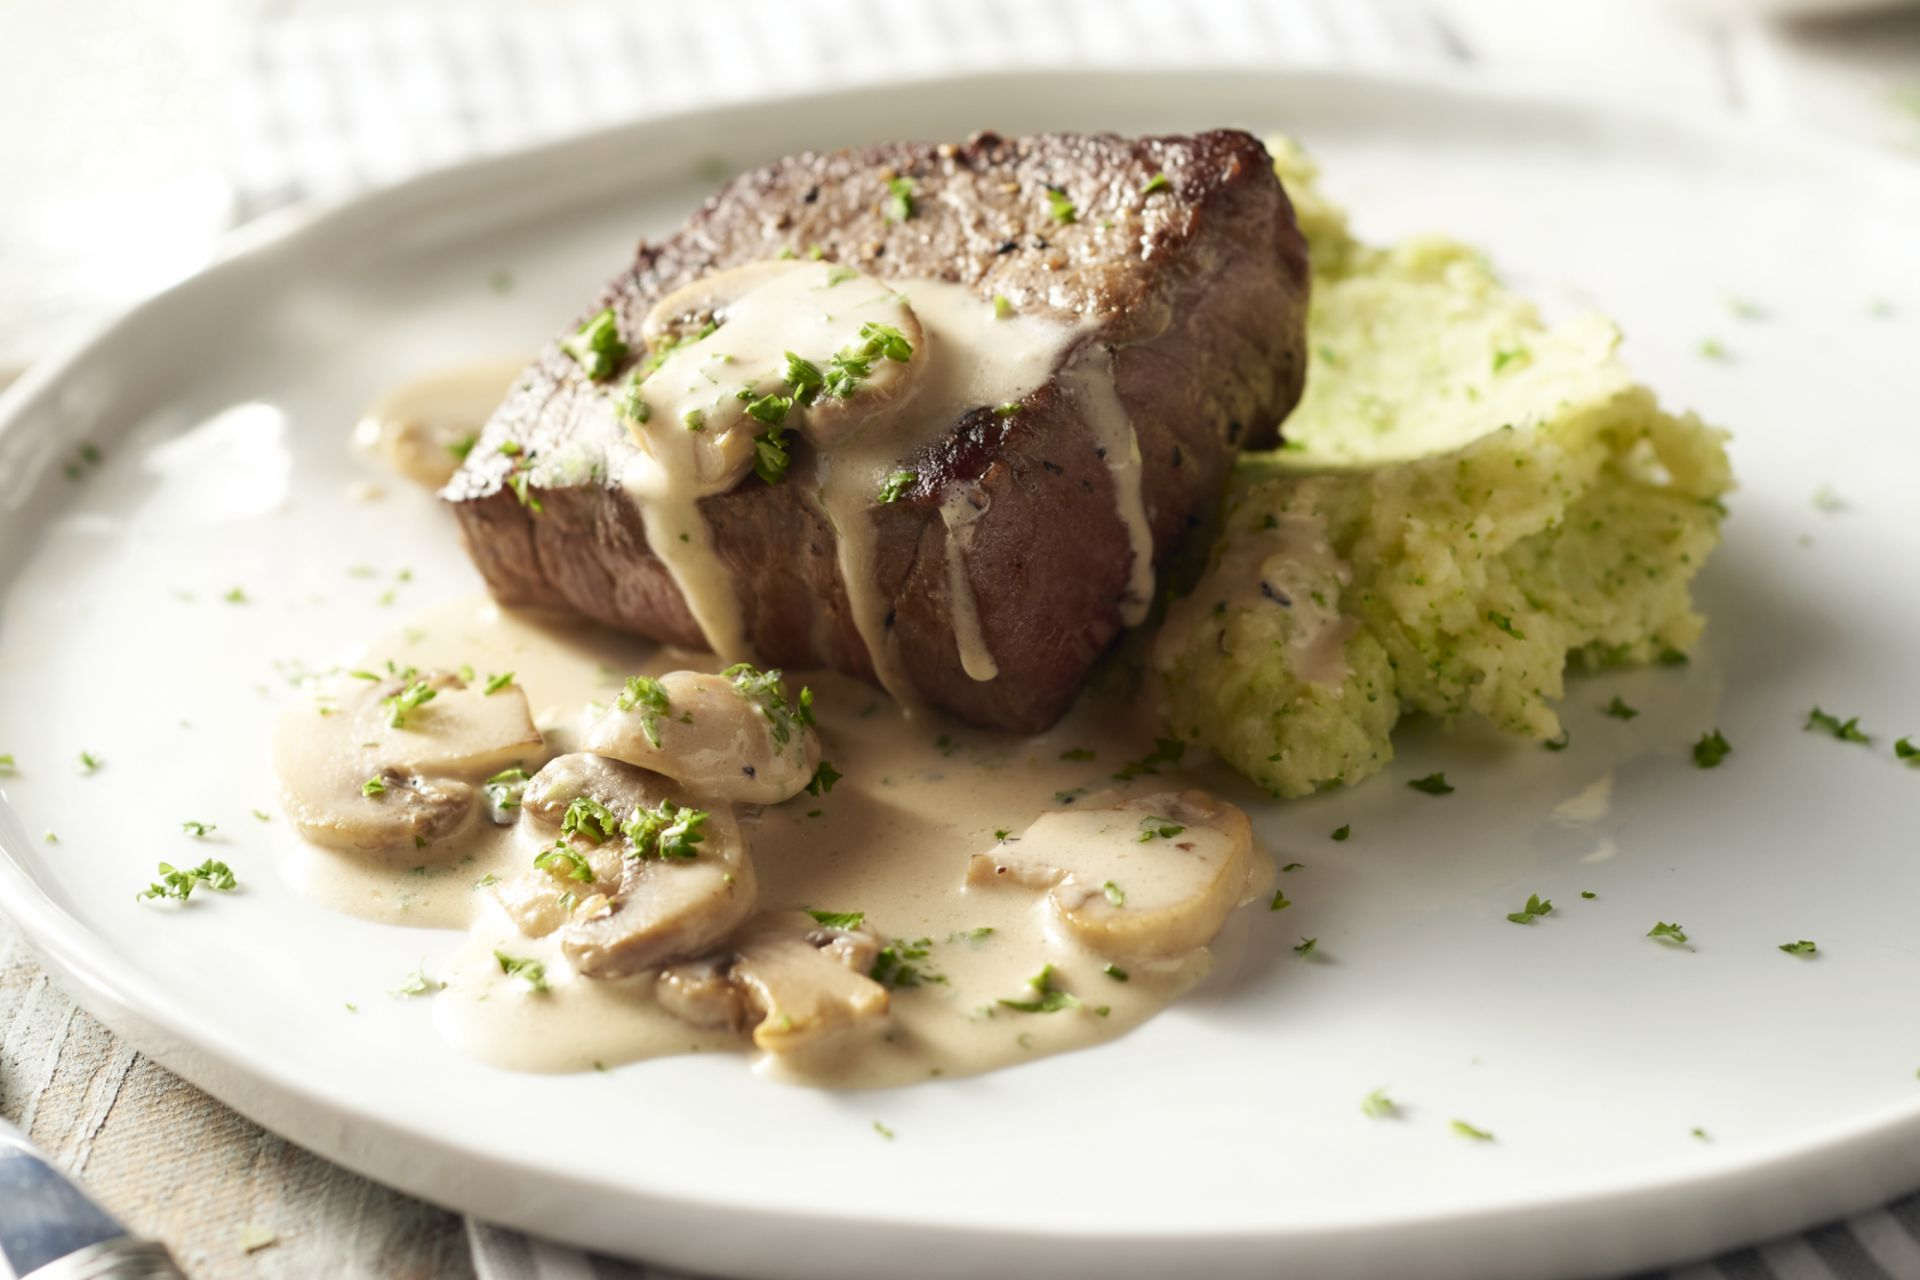 Steak met broccolipuree en champignonroomsaus